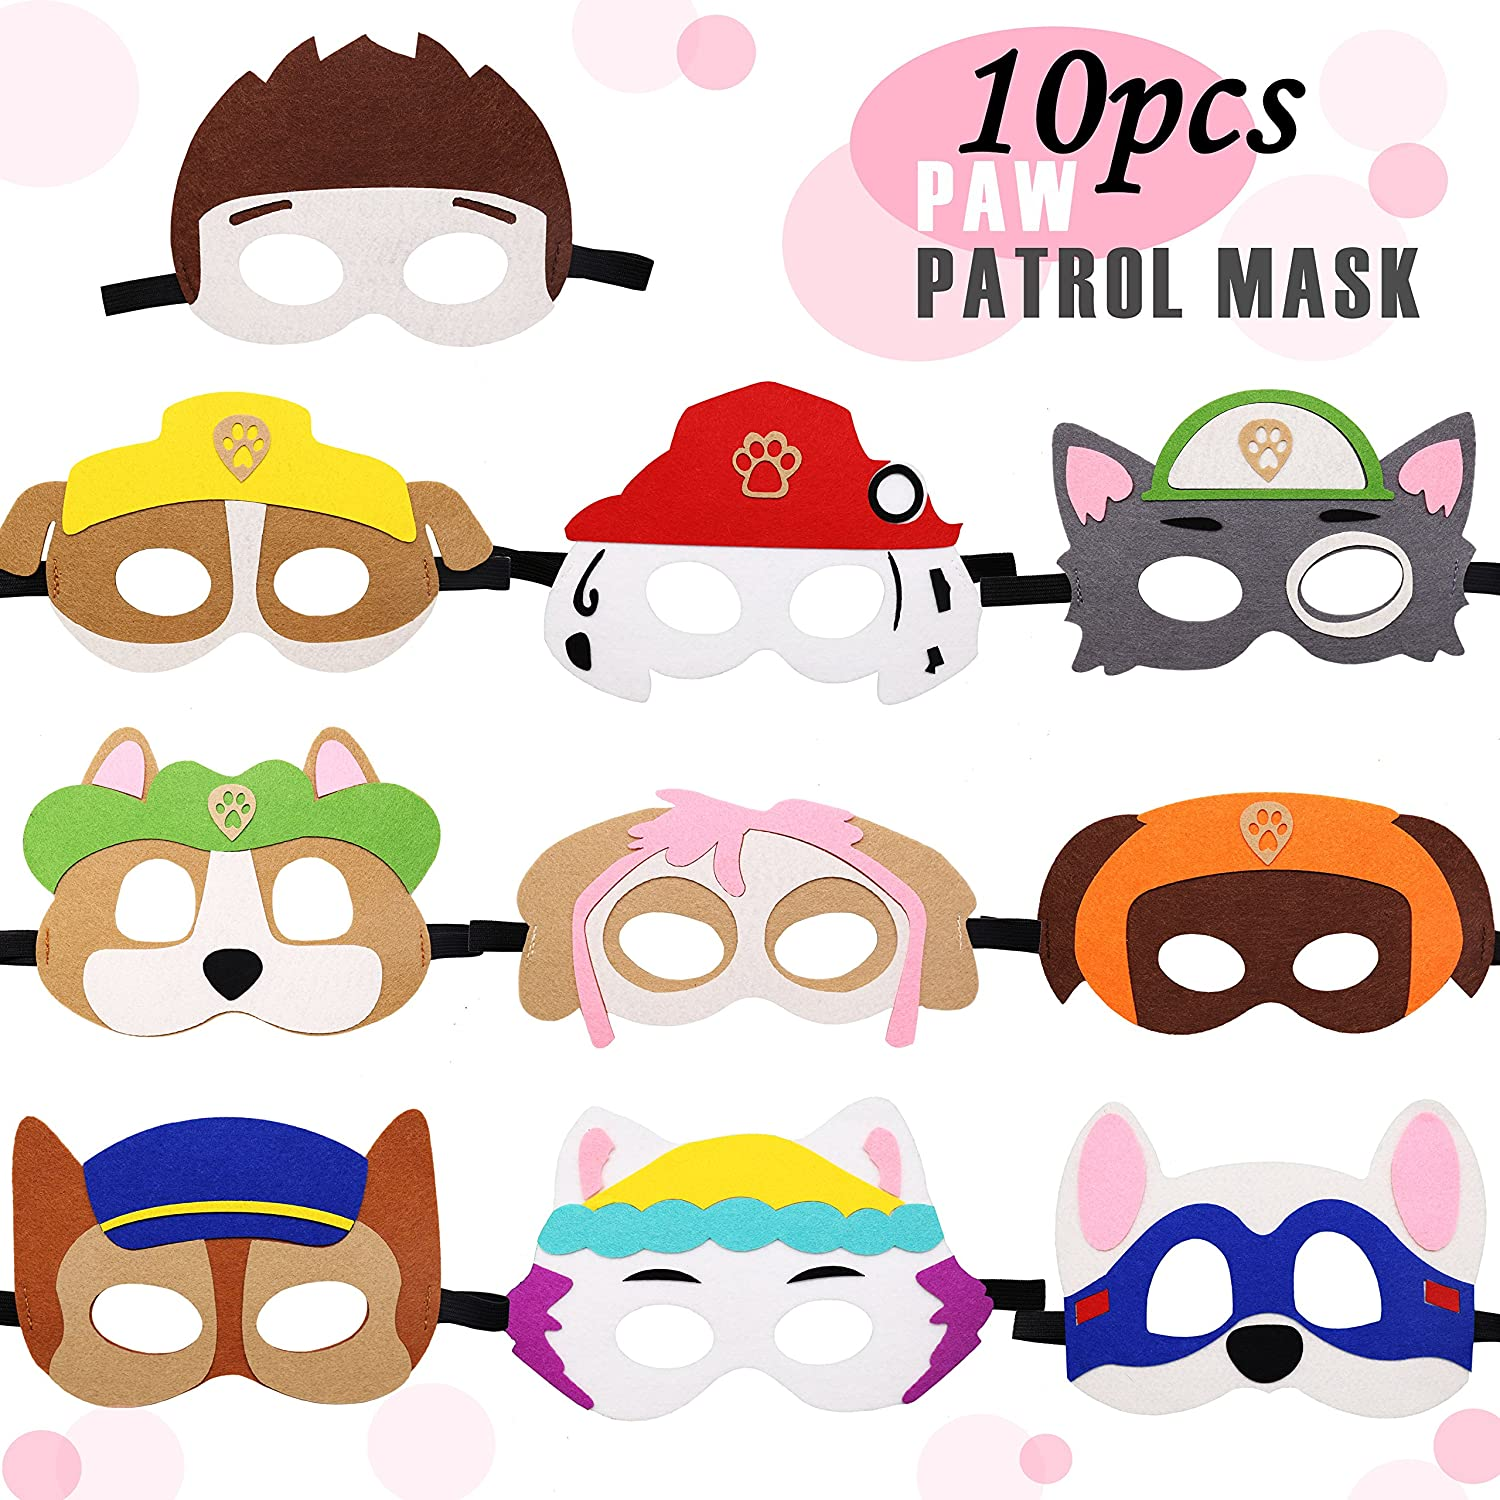 Kitticcino Paw Dog Patrol Toys Puppy Party Masks Birthday Cosplay Character Party Favors Supplies For Kids Set Of 10